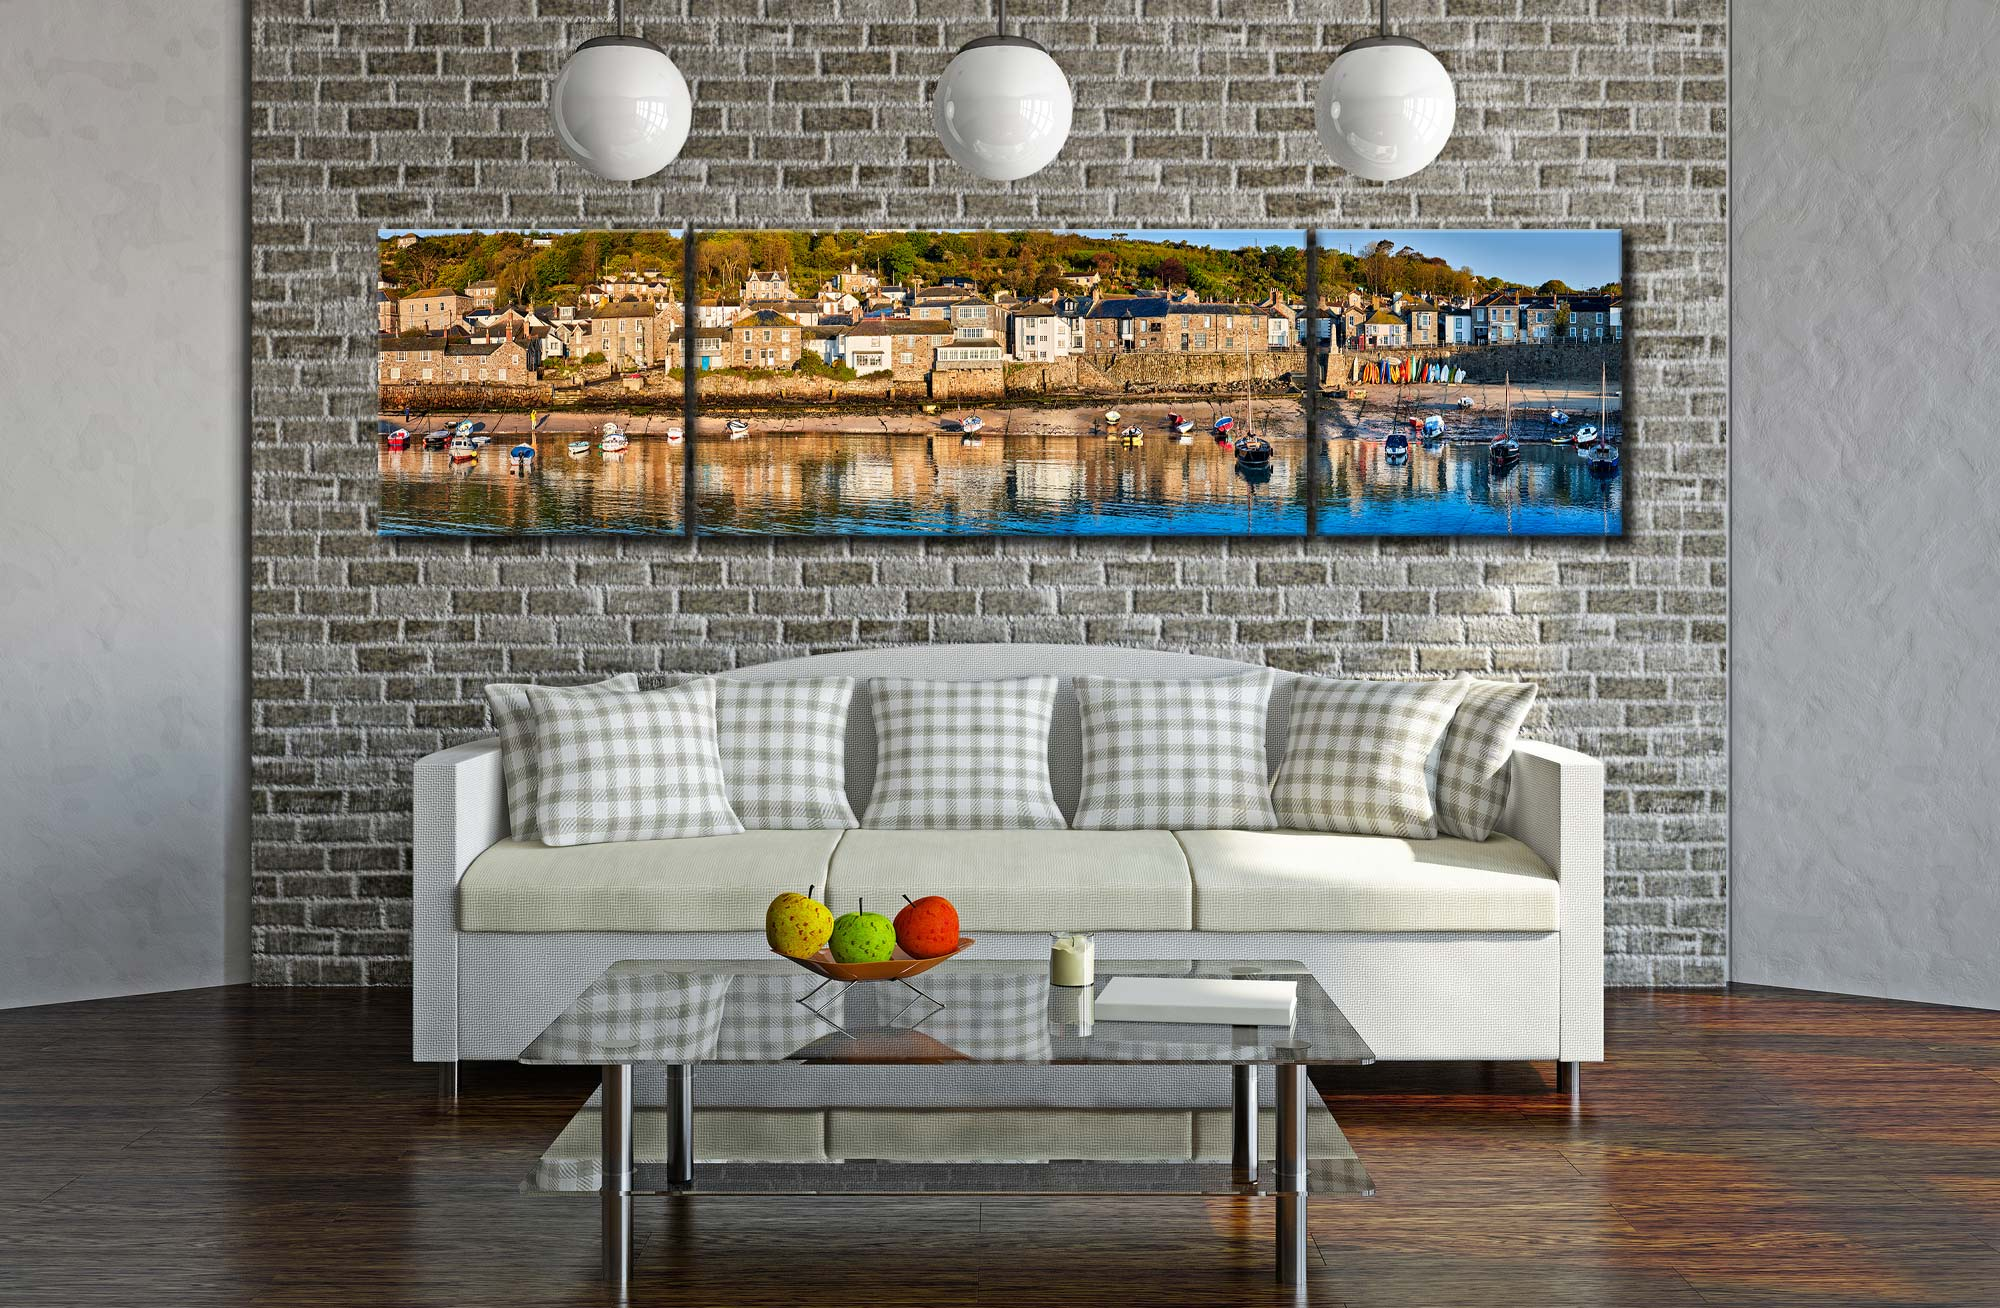 Mousehole Harbour Panorama - 3 Panel Wide Centre Canvas on Wall